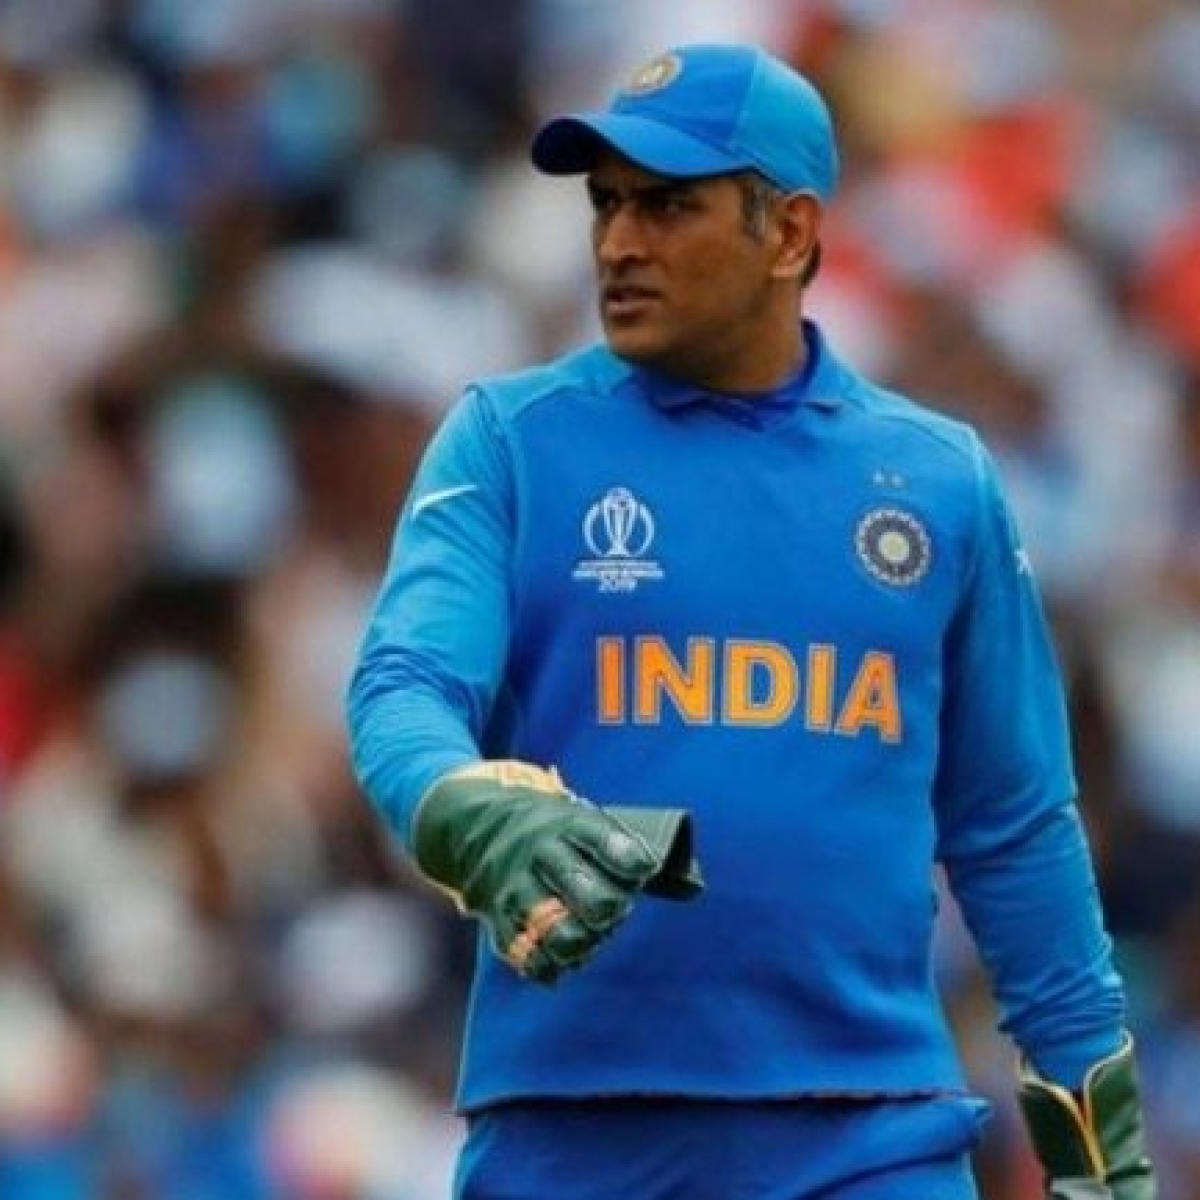 Cricket Australia's ODI Team of the Decade: MS Dhoni is captain but which other Indians make the cut?